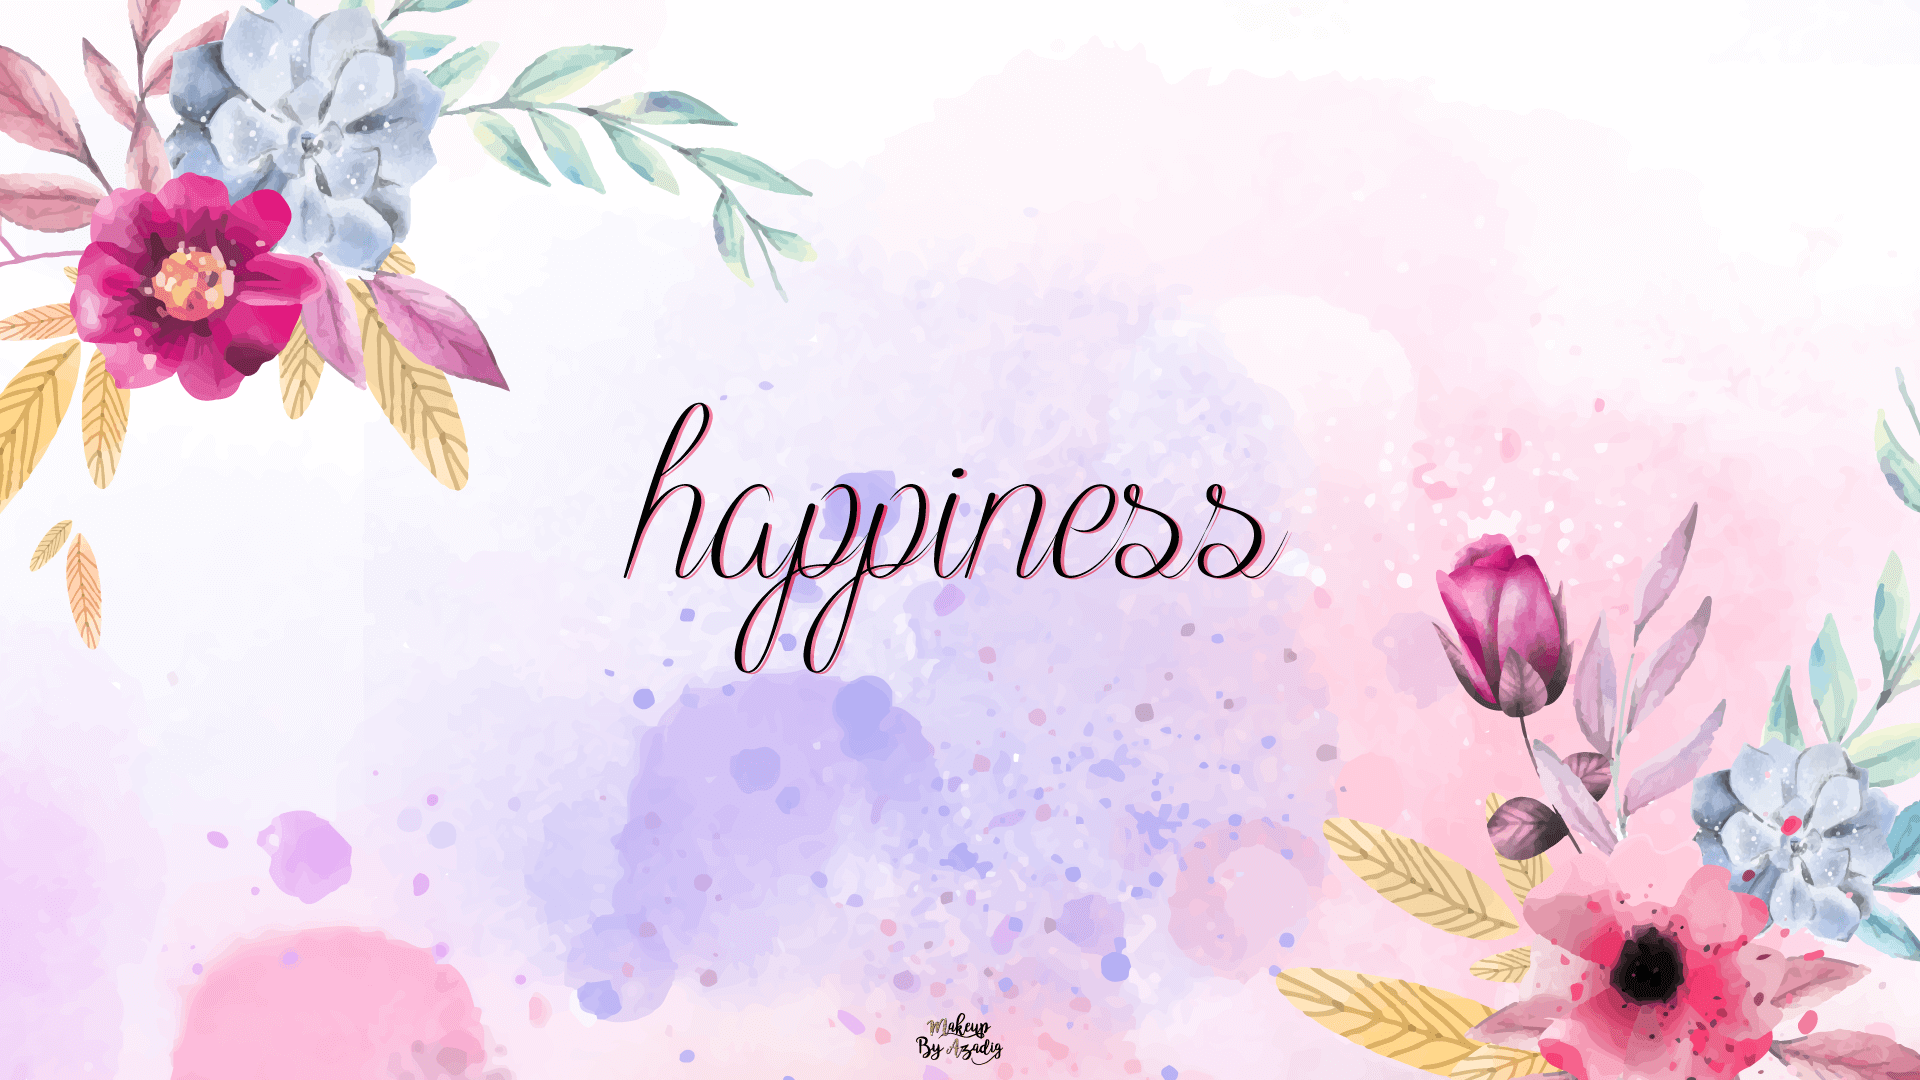 fond-decran-wallpaper-happiness-bonheur-joie-ordinateur-mac-macbook-imac-pc-makeupbyazadig-tendance